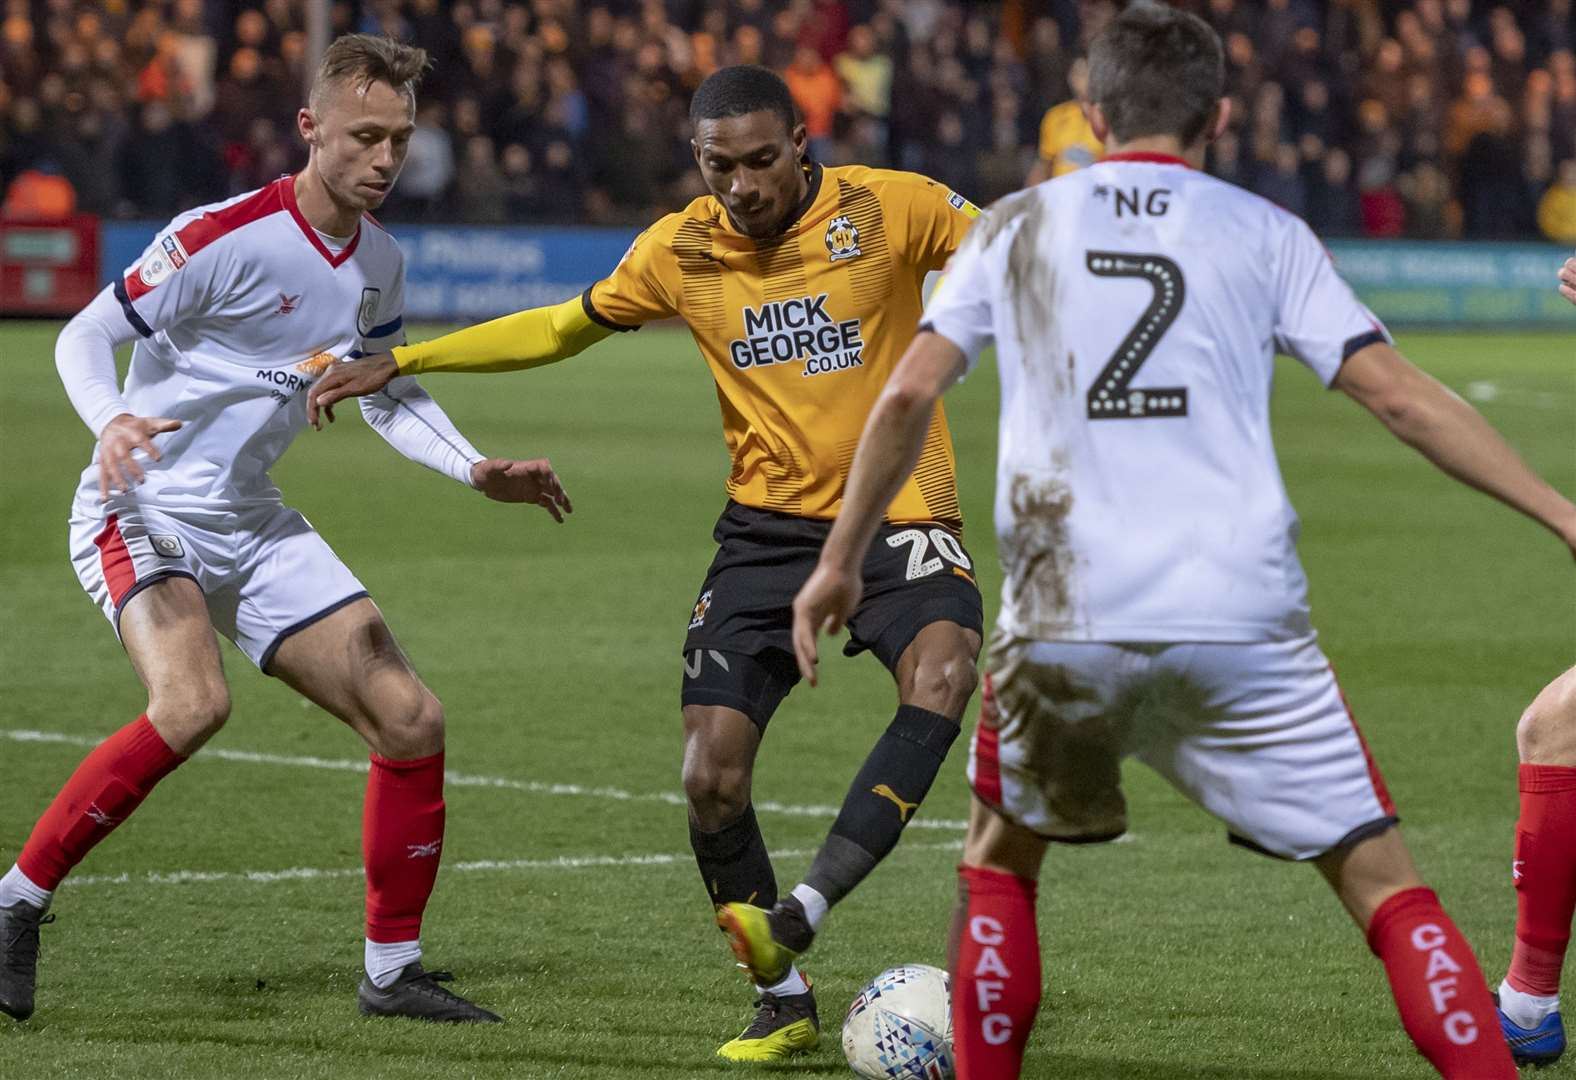 Colin Calderwood thankful for a point as misfiring Cambridge United are held by Crewe Alexandra